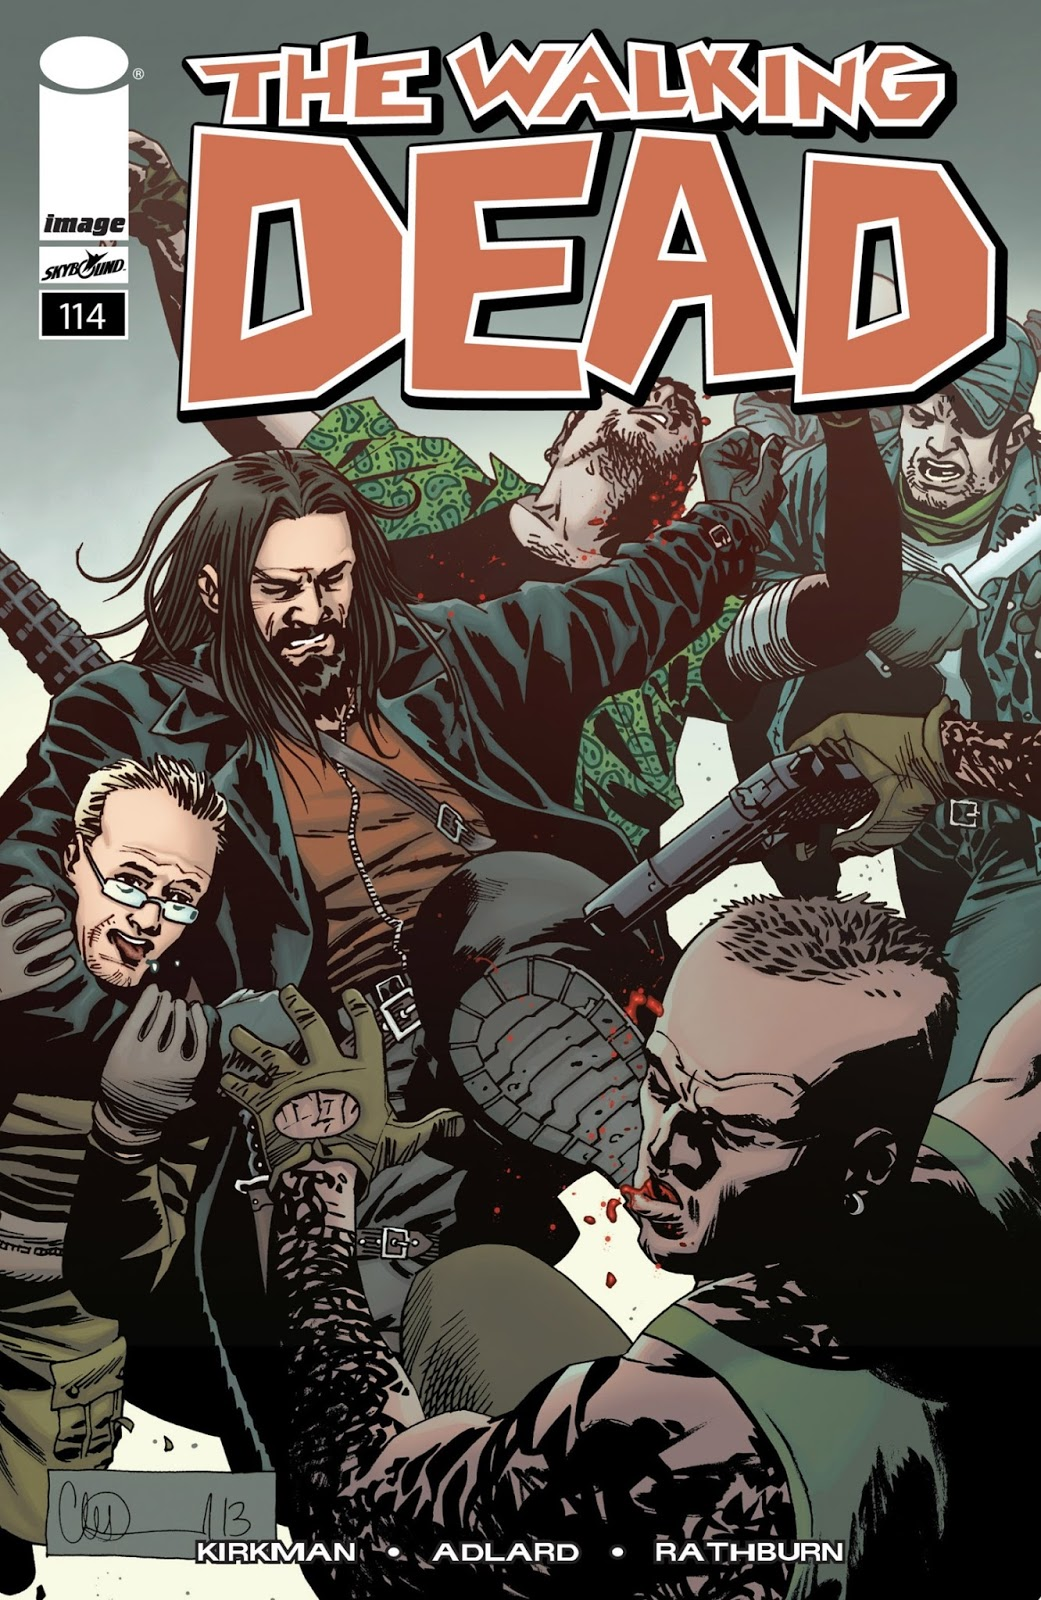 cómic 114 the walking dead